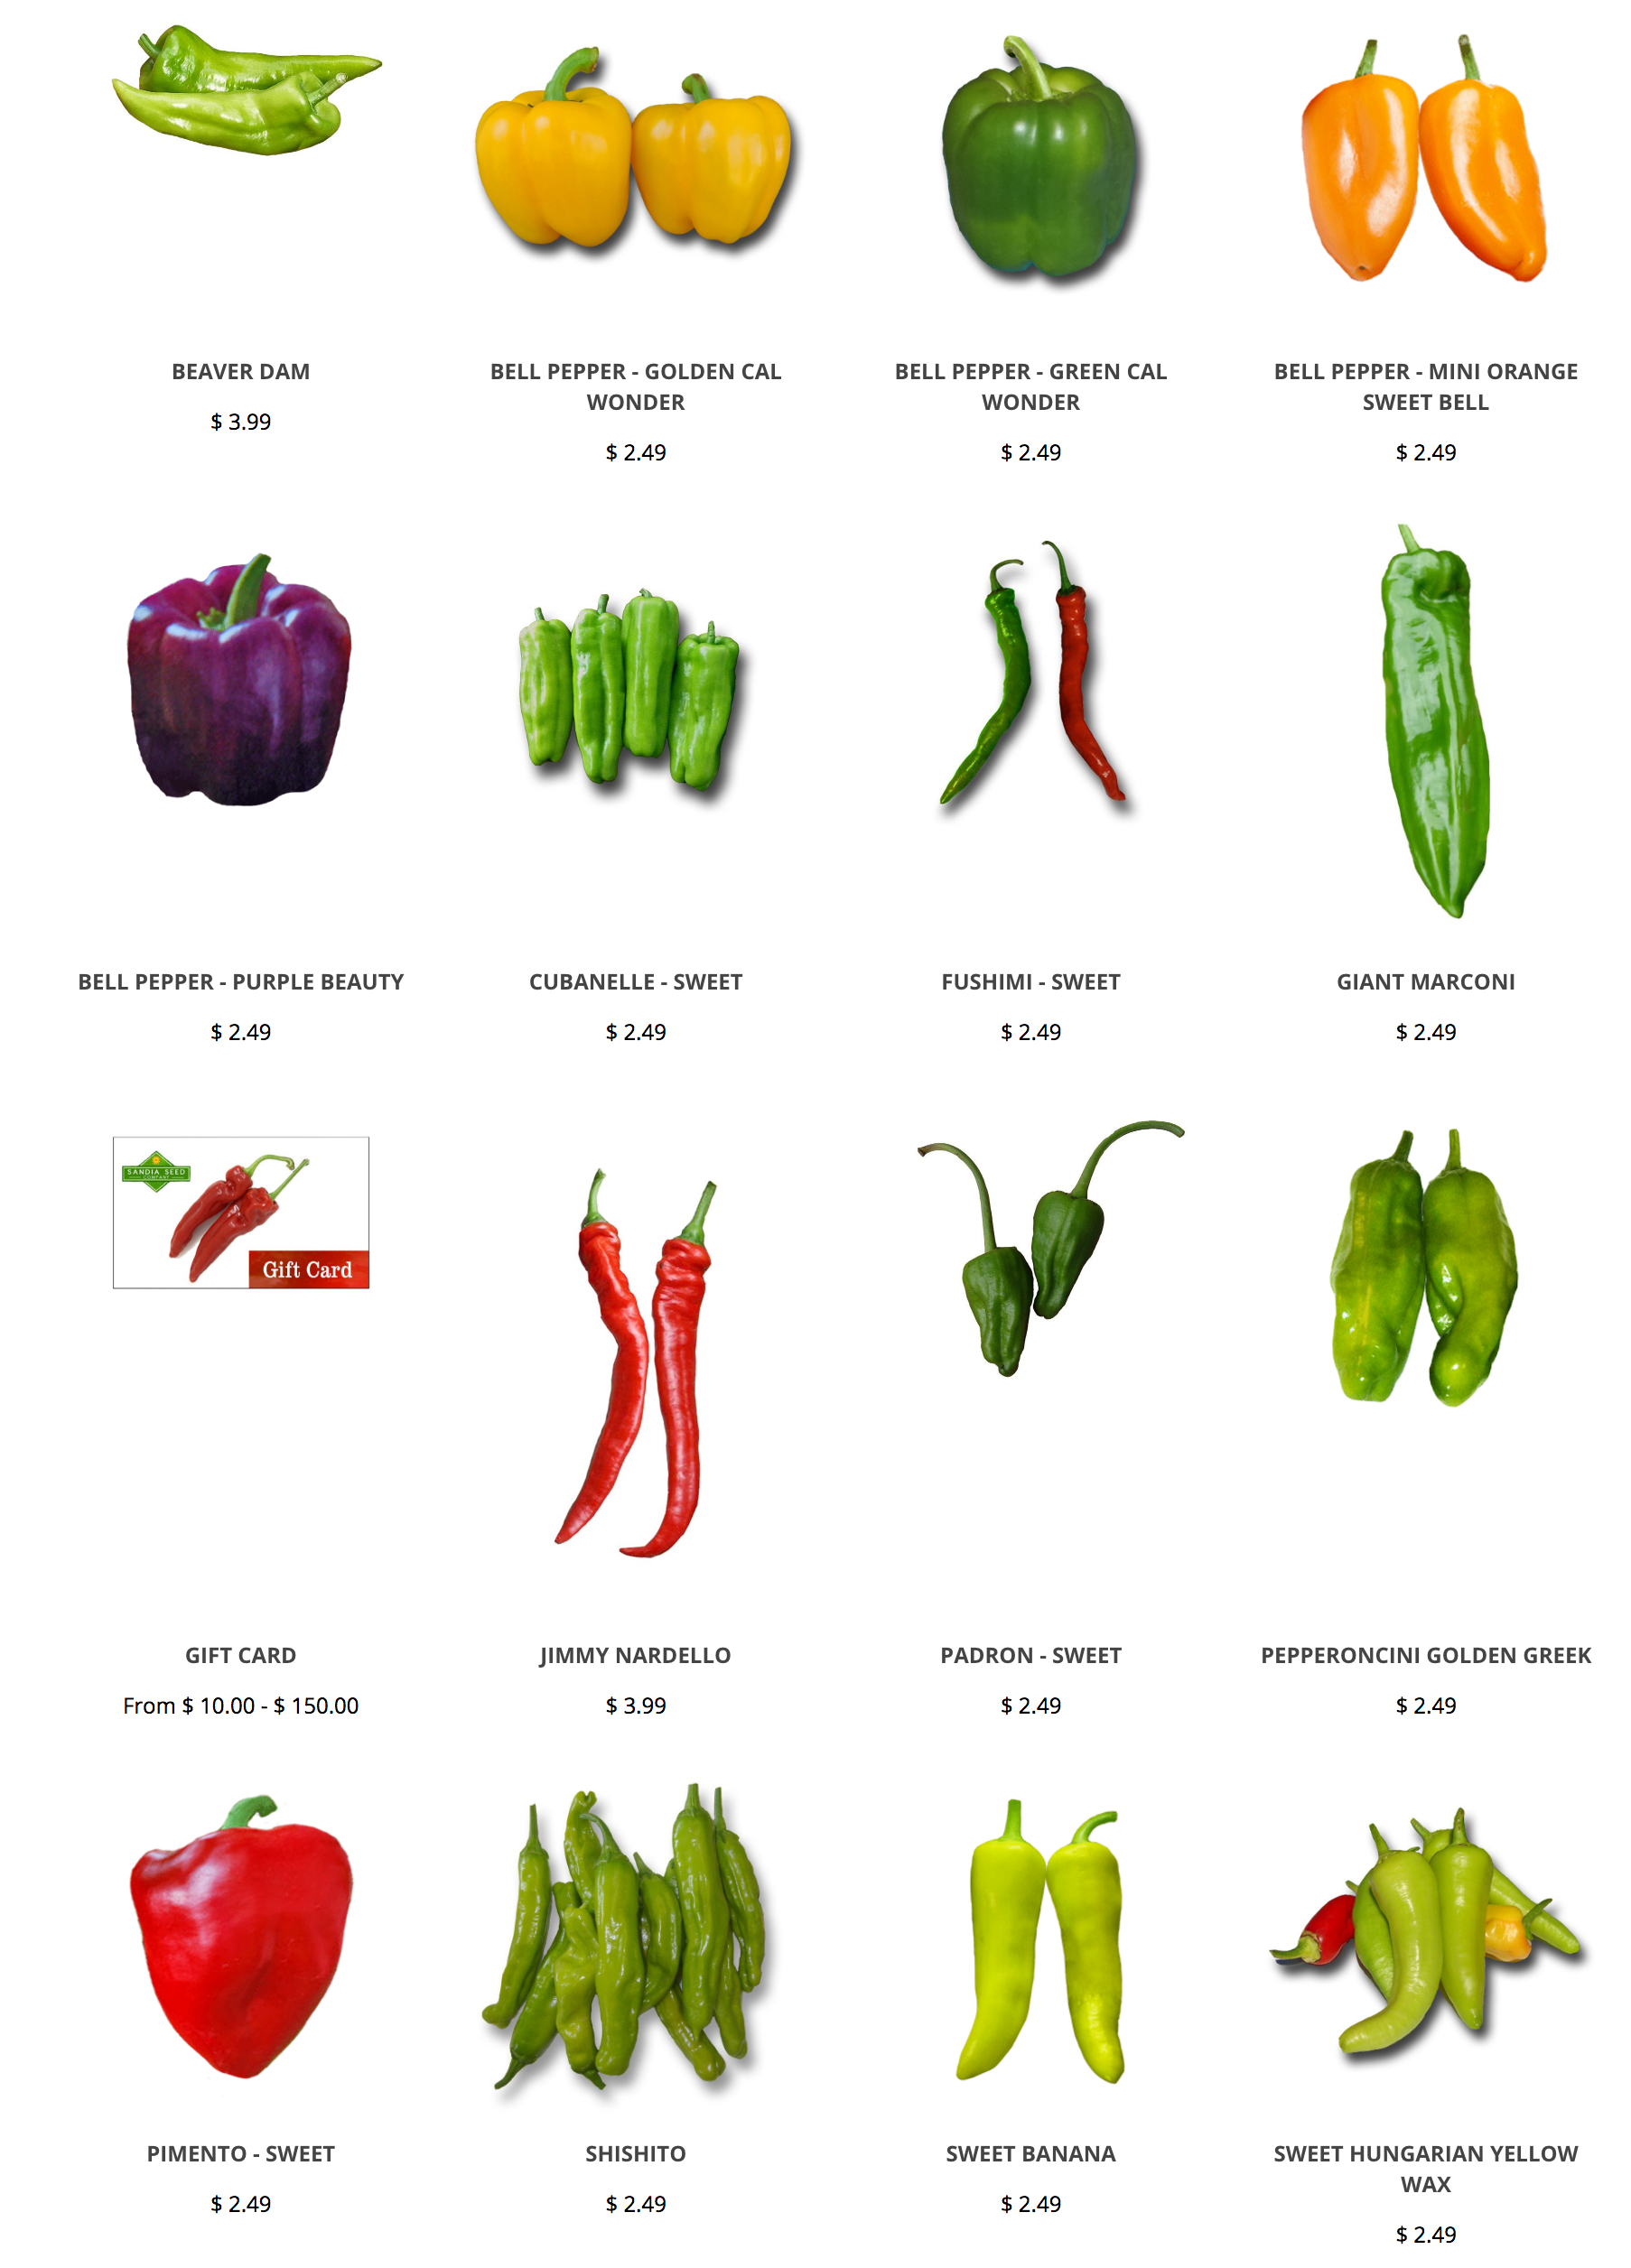 Sweet Pepper Seeds Try All Of Our Delicious Varieties Plus Make Sure To Check Out Our Hatch Chile Seeds Stuffed Peppers Stuffed Sweet Peppers Pepper Seeds